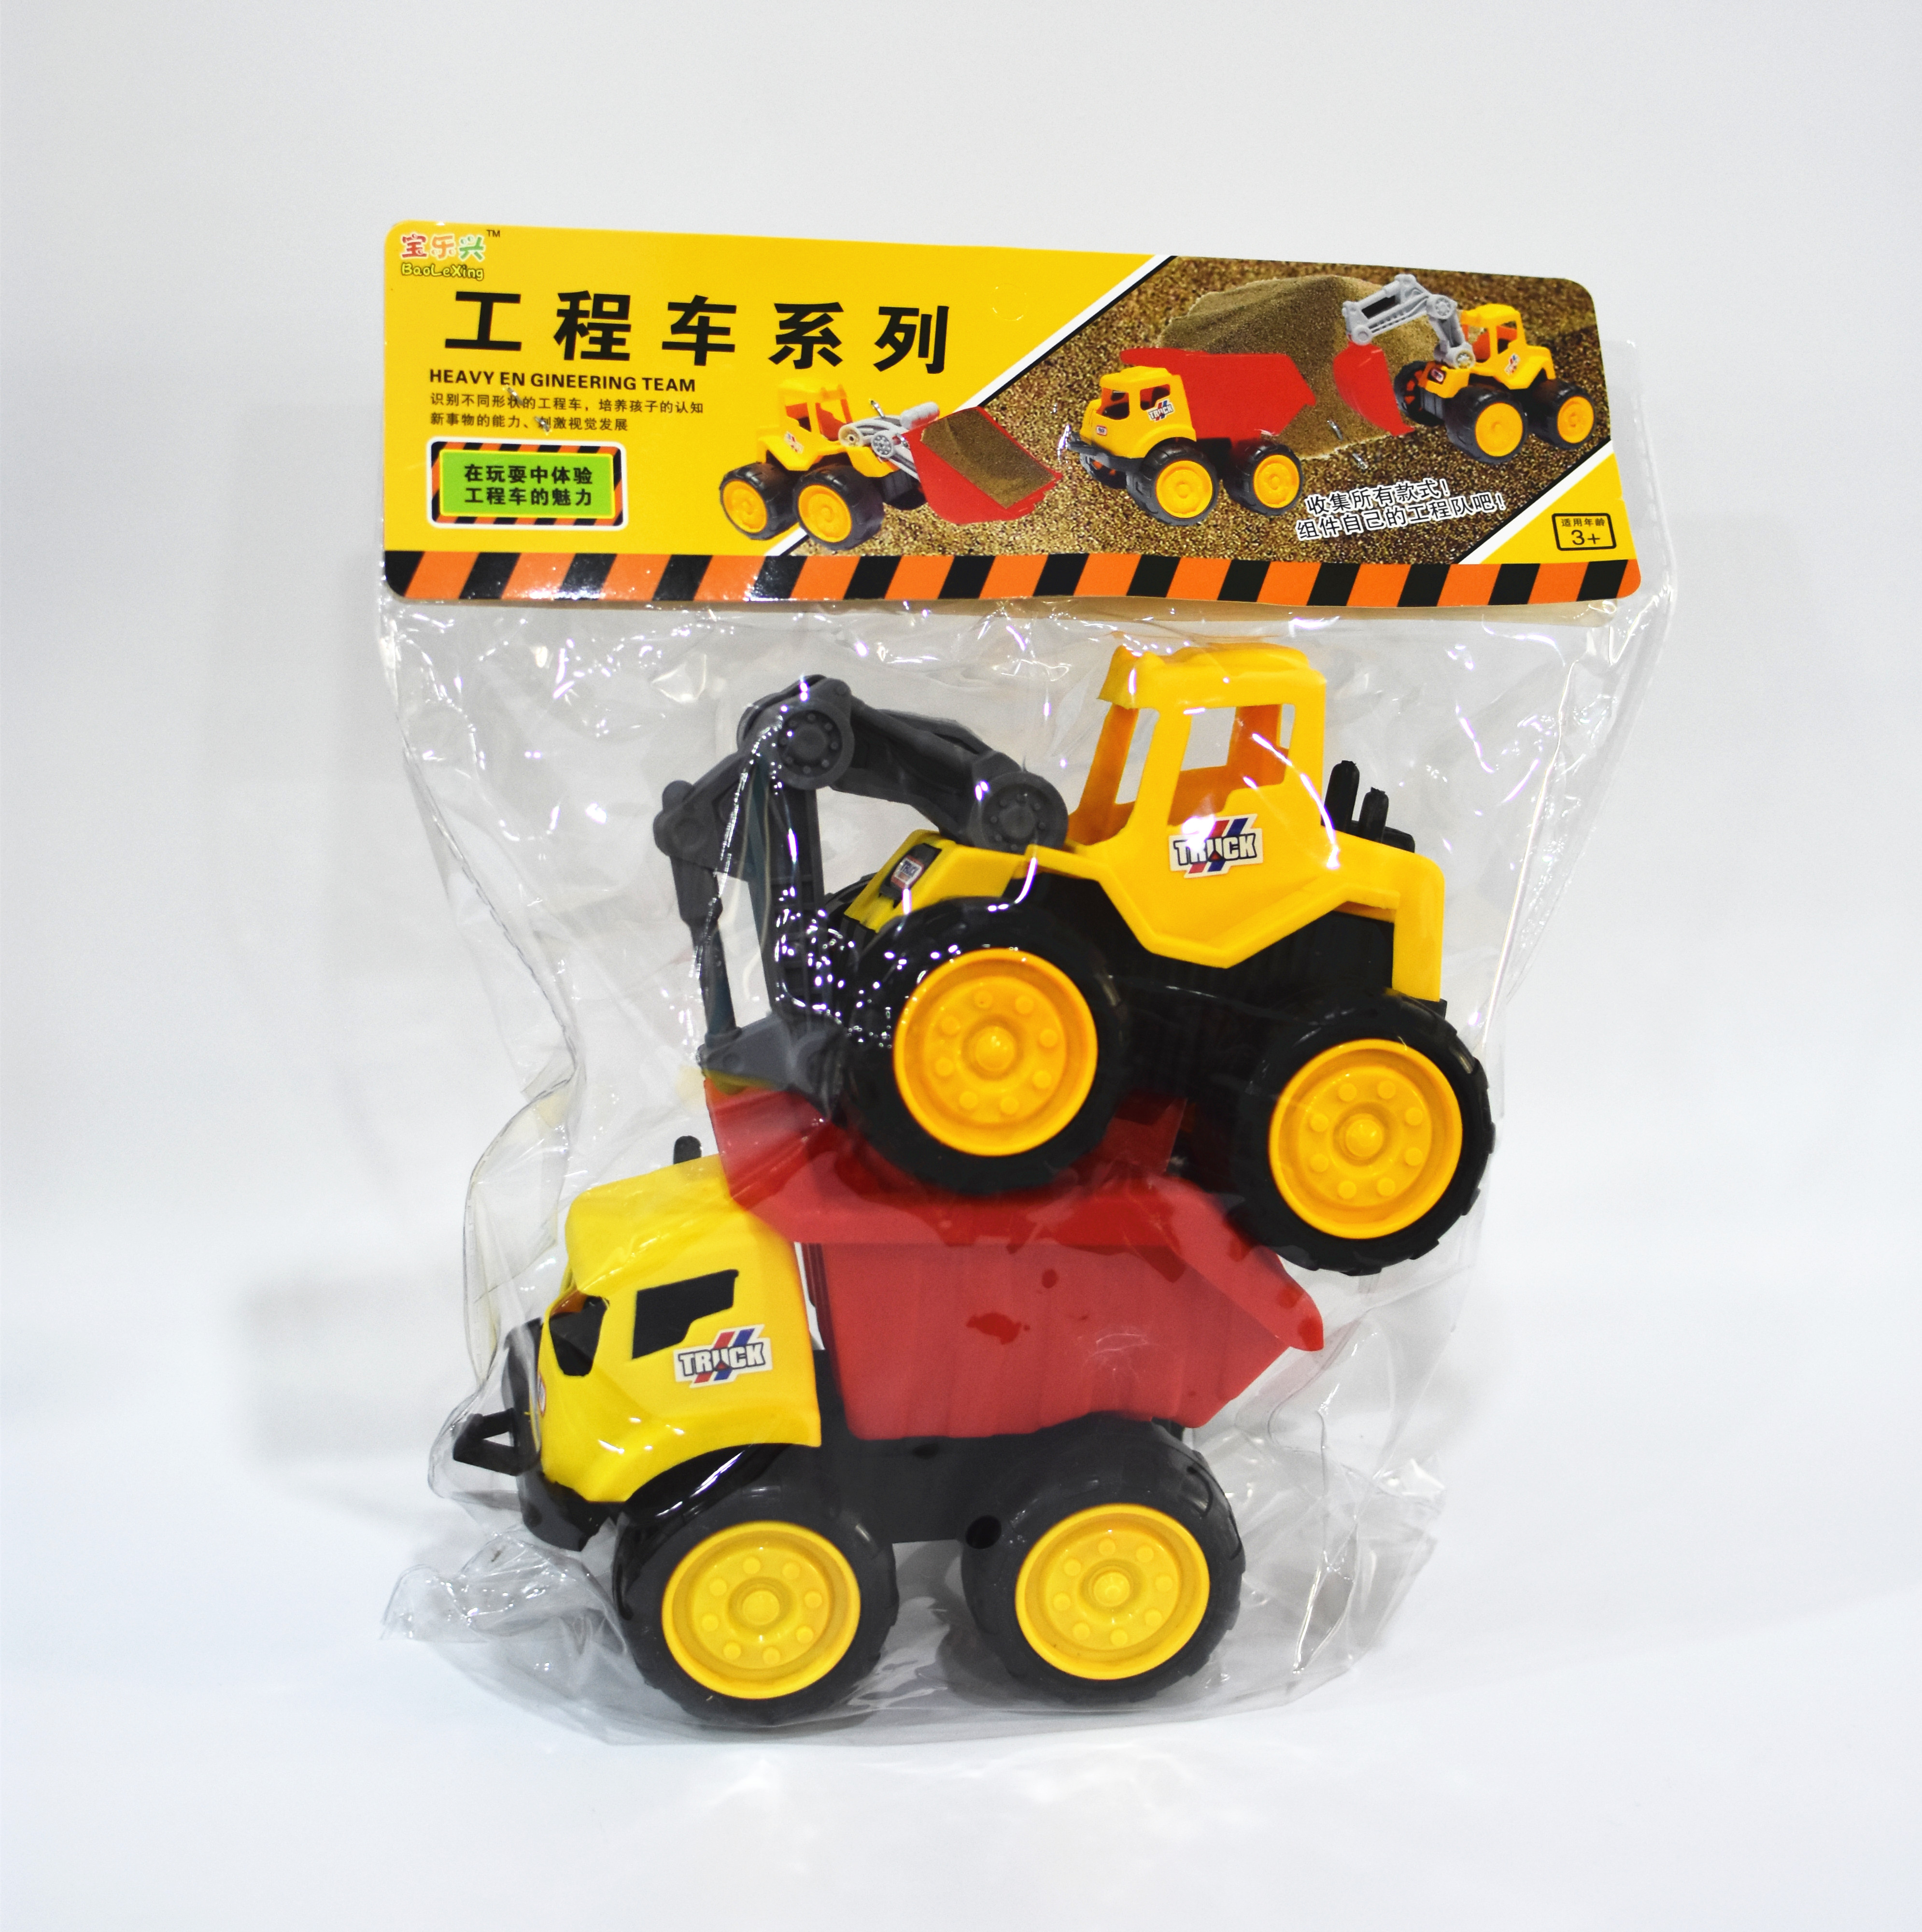 FREE WHEEL TRUCK TOY LY1357